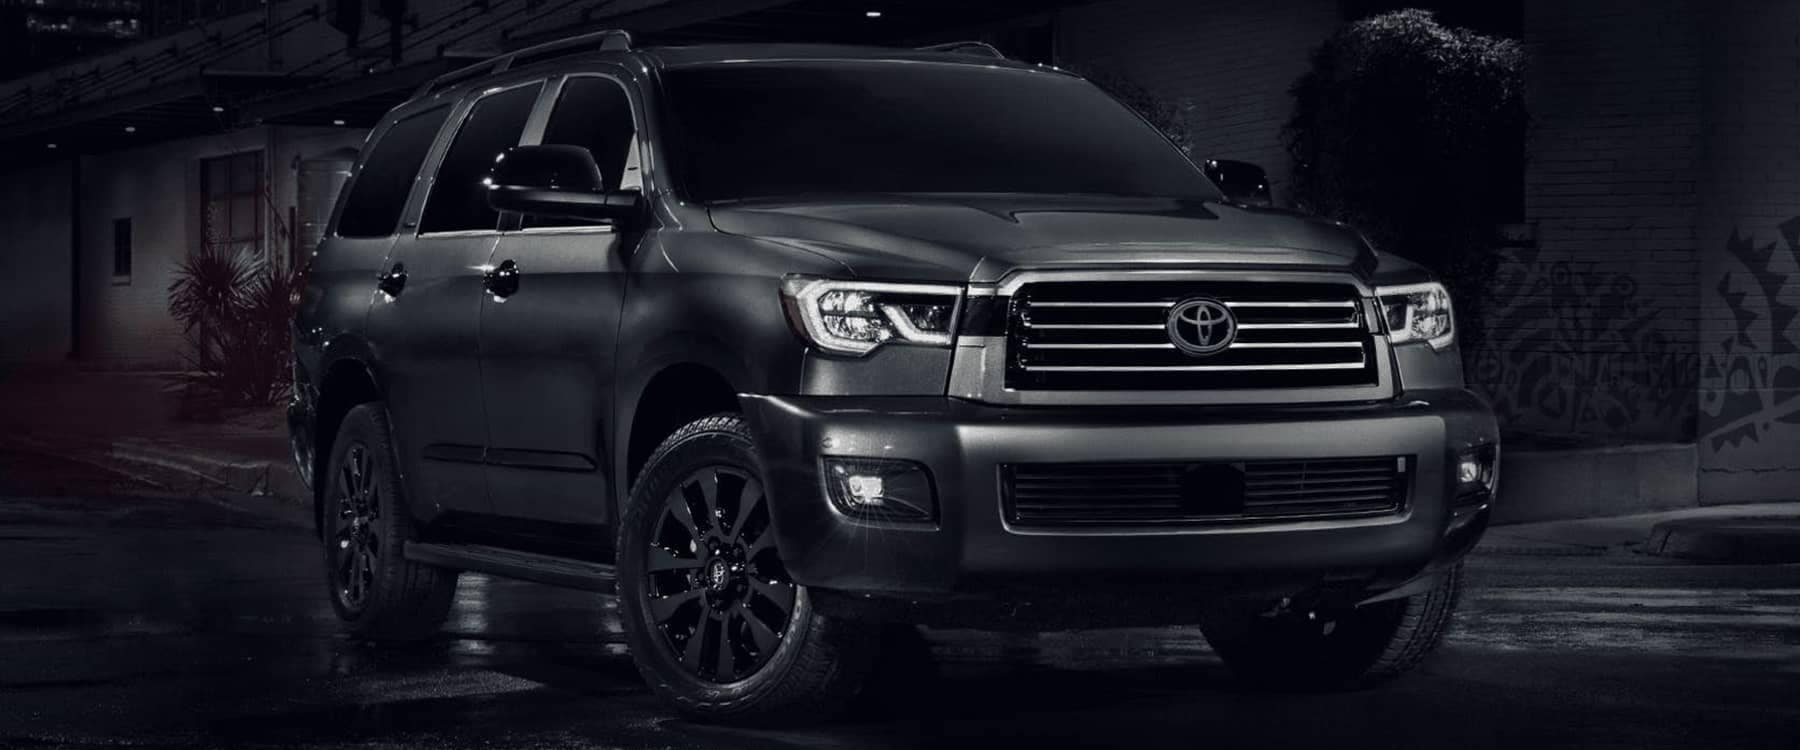 2021 Toyota Sequoia parked in street at night